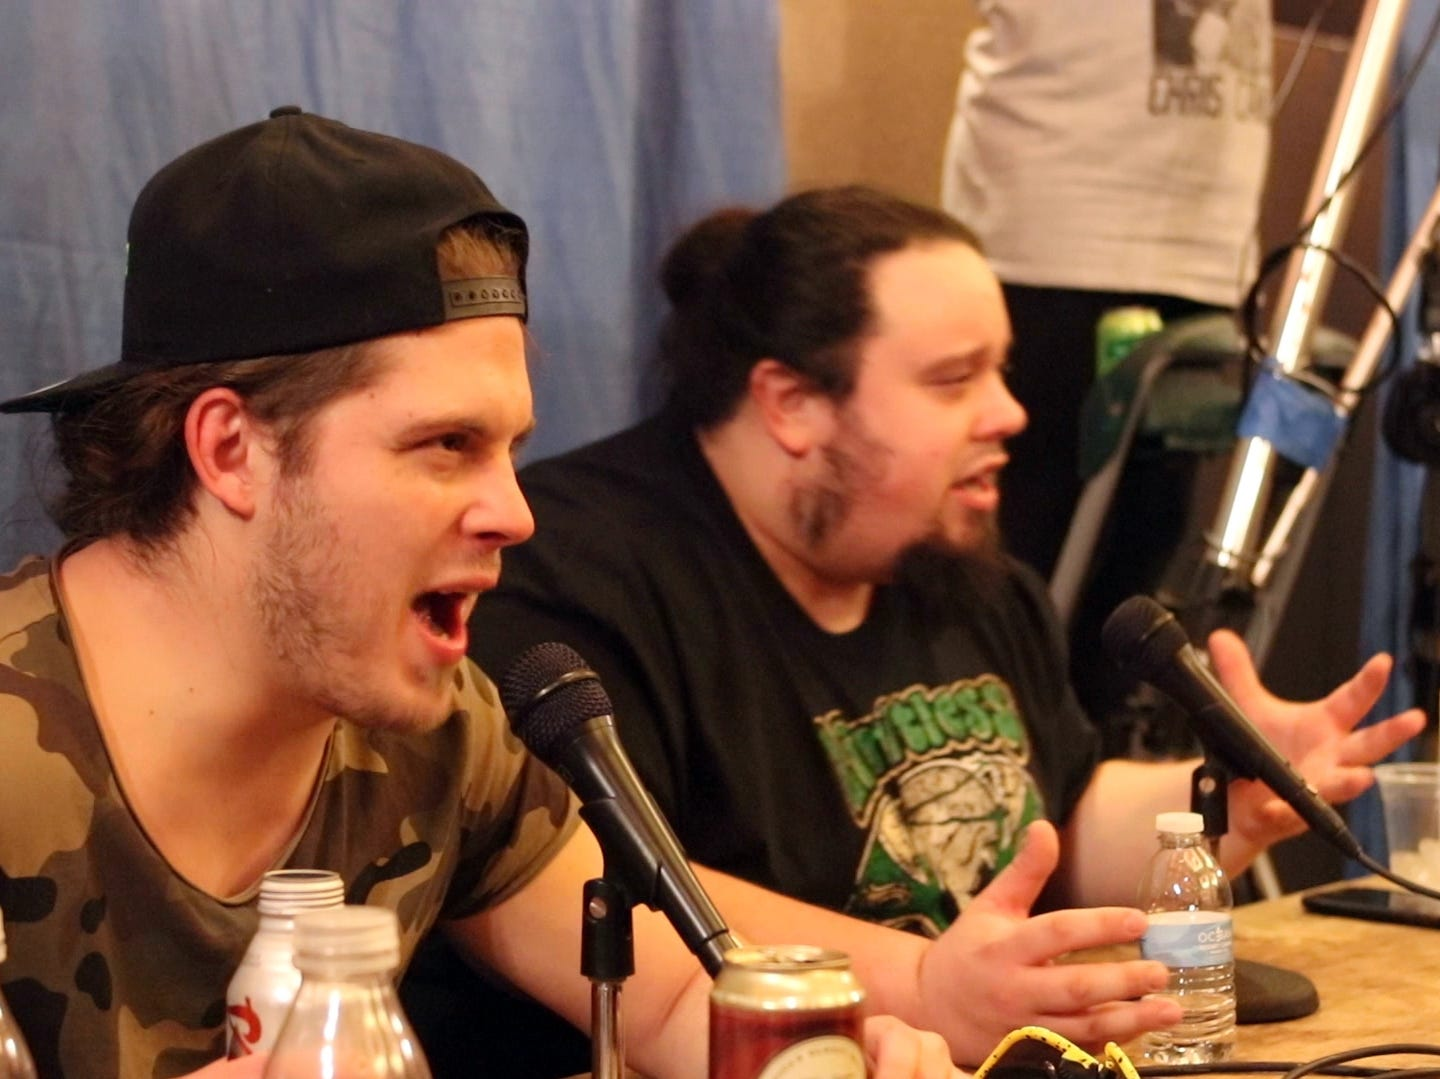 Joey Janela watches a match and does commentary during a Game Changer Wrestling Show at the Showboat Hotel in Atlantic City on Feb. 16. Janela is preparing for his comeback at the annual GCW Joey Janela's Spring Break show, held in Jersey City on April 5 and April 6, after a knee injury last year.